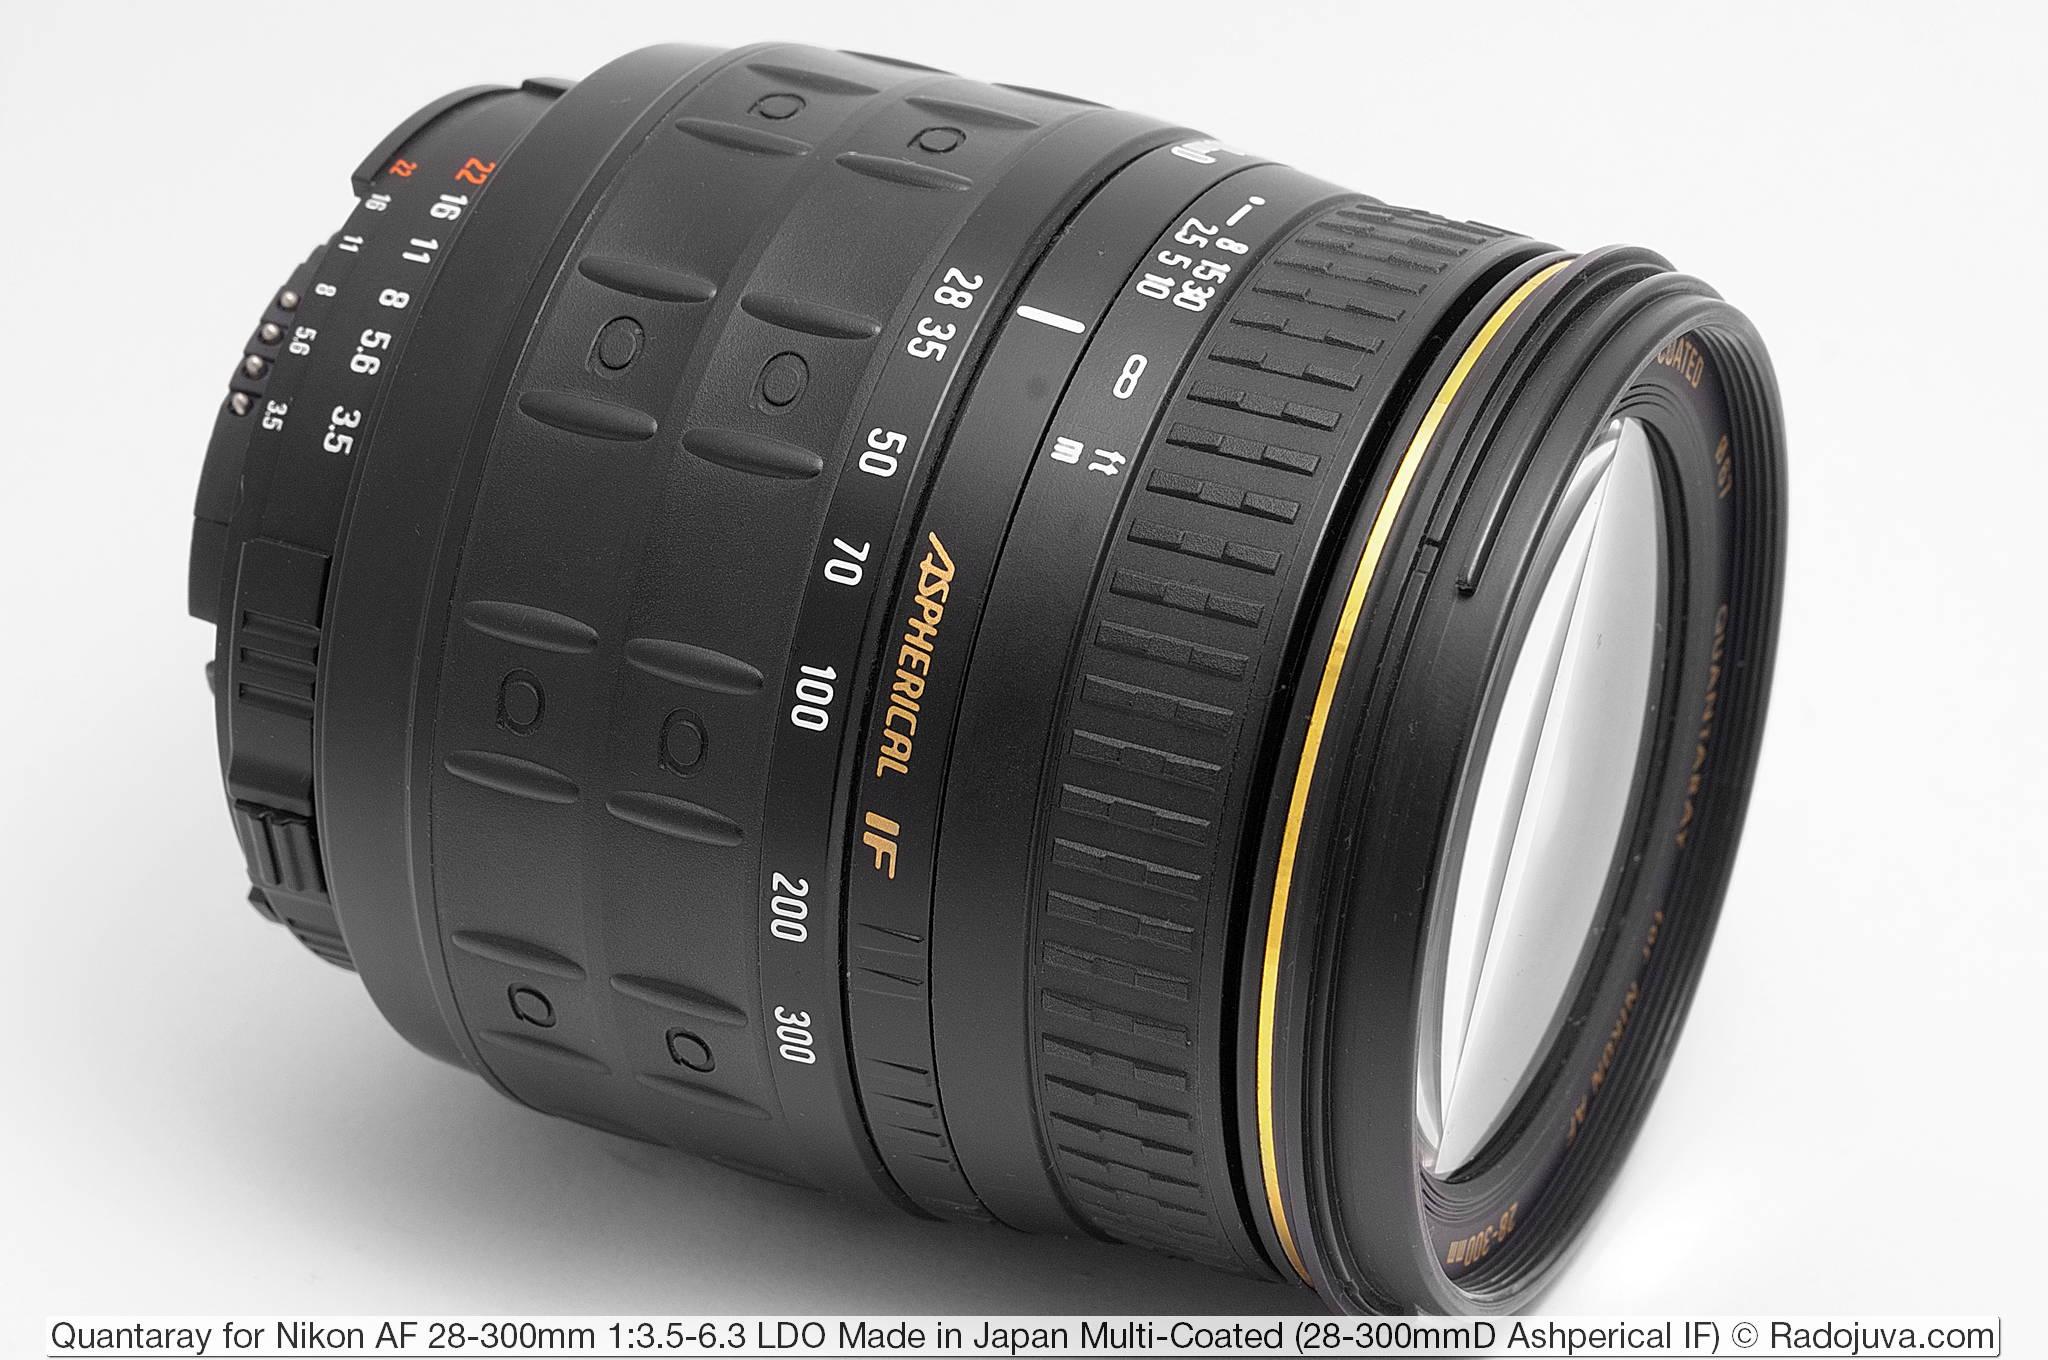 Quantaray (SIGMA) for Nikon AF 28-300mm 1:3.5-6.3 LDO Multi-Coated (28-300mmD Ashperical IF)